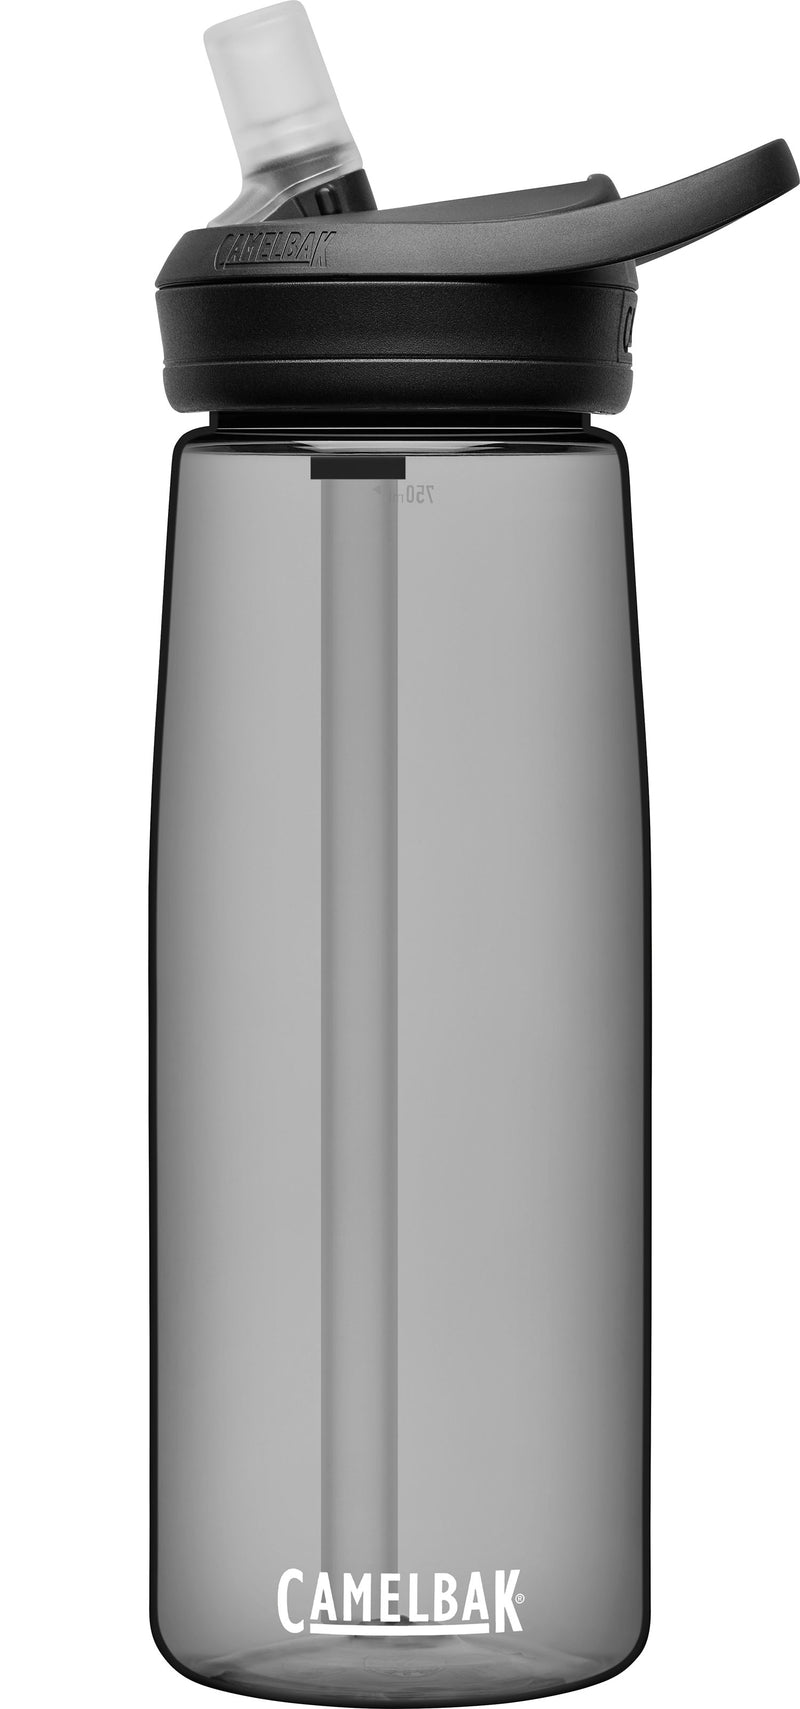 Charcoal .75 Litres CamelBak Eddy+ Water Bottle